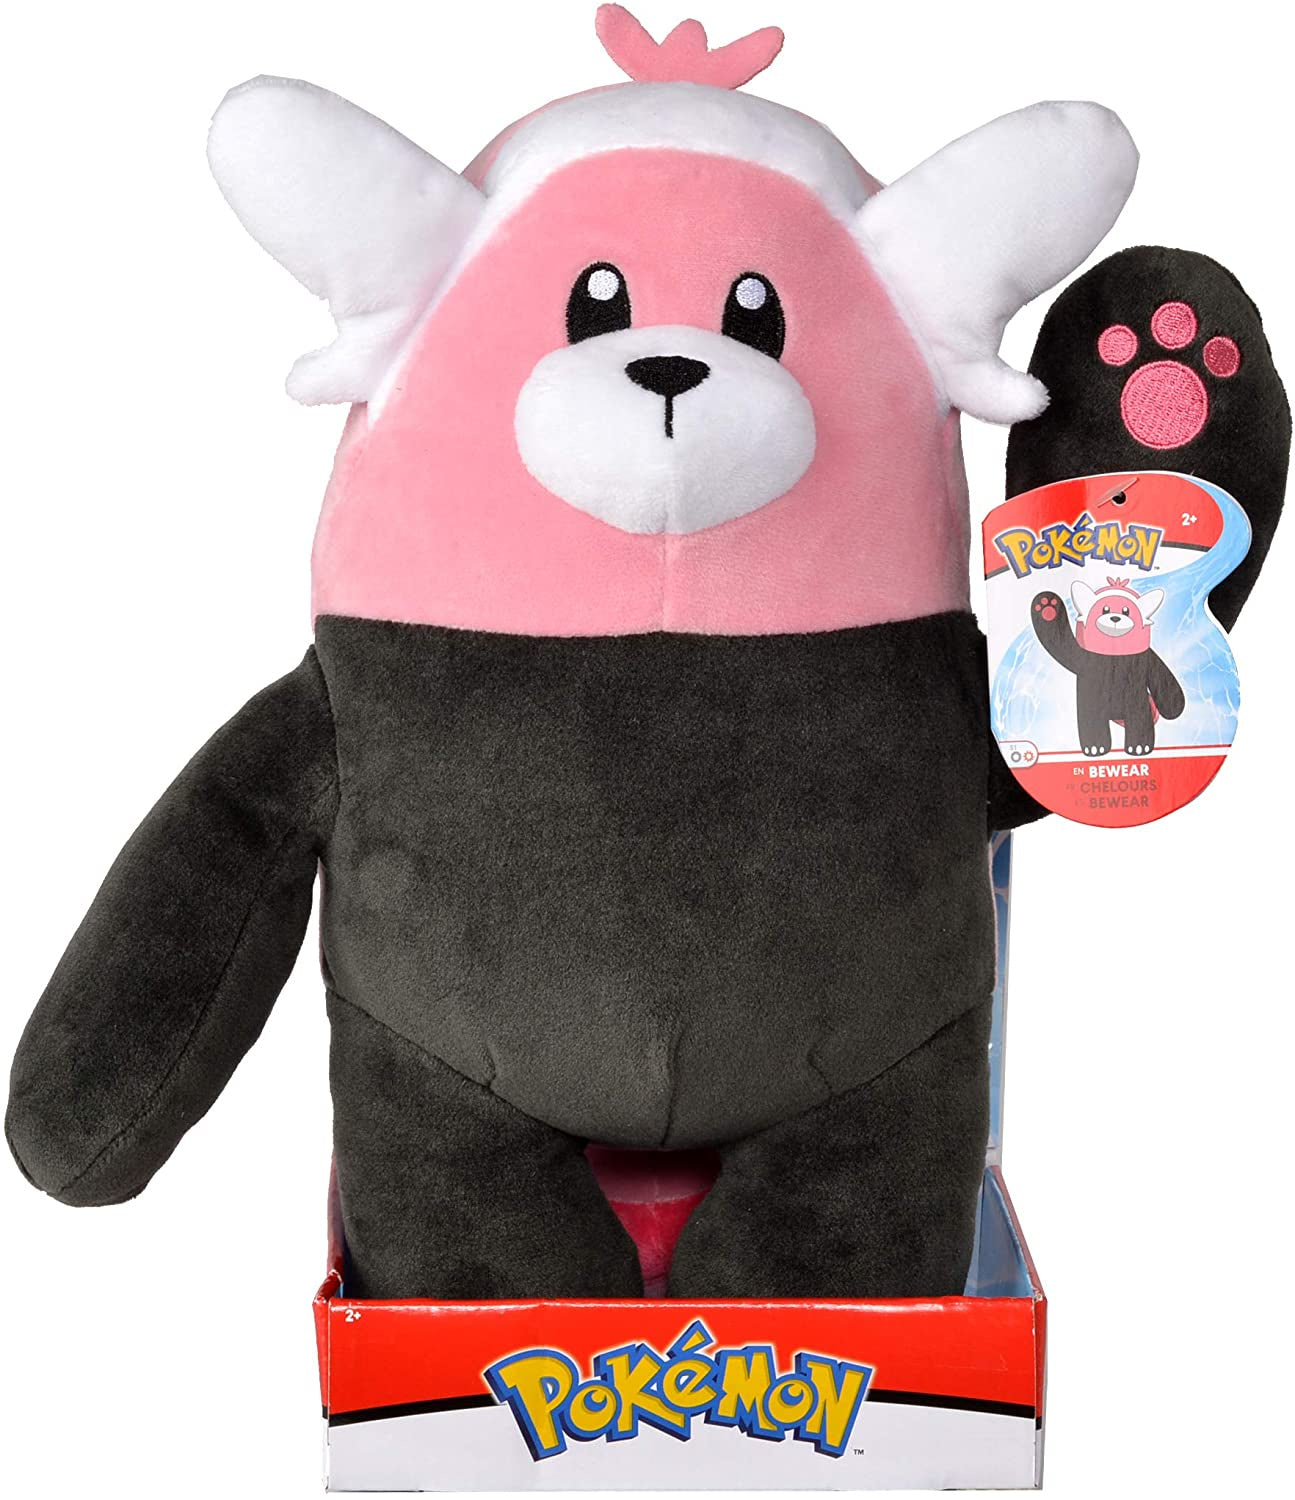 "Pokemon 12"" Plush Bewear"